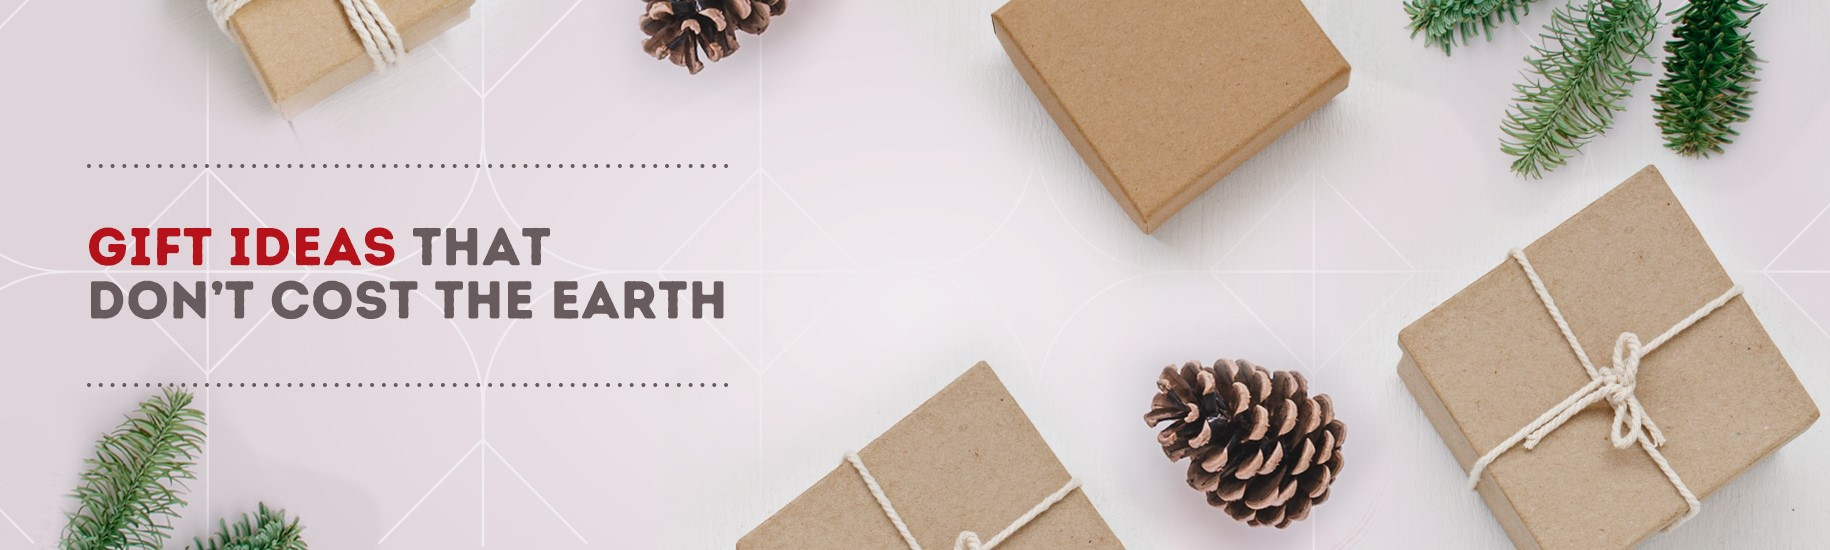 Gifts That Don't Cost the Earth